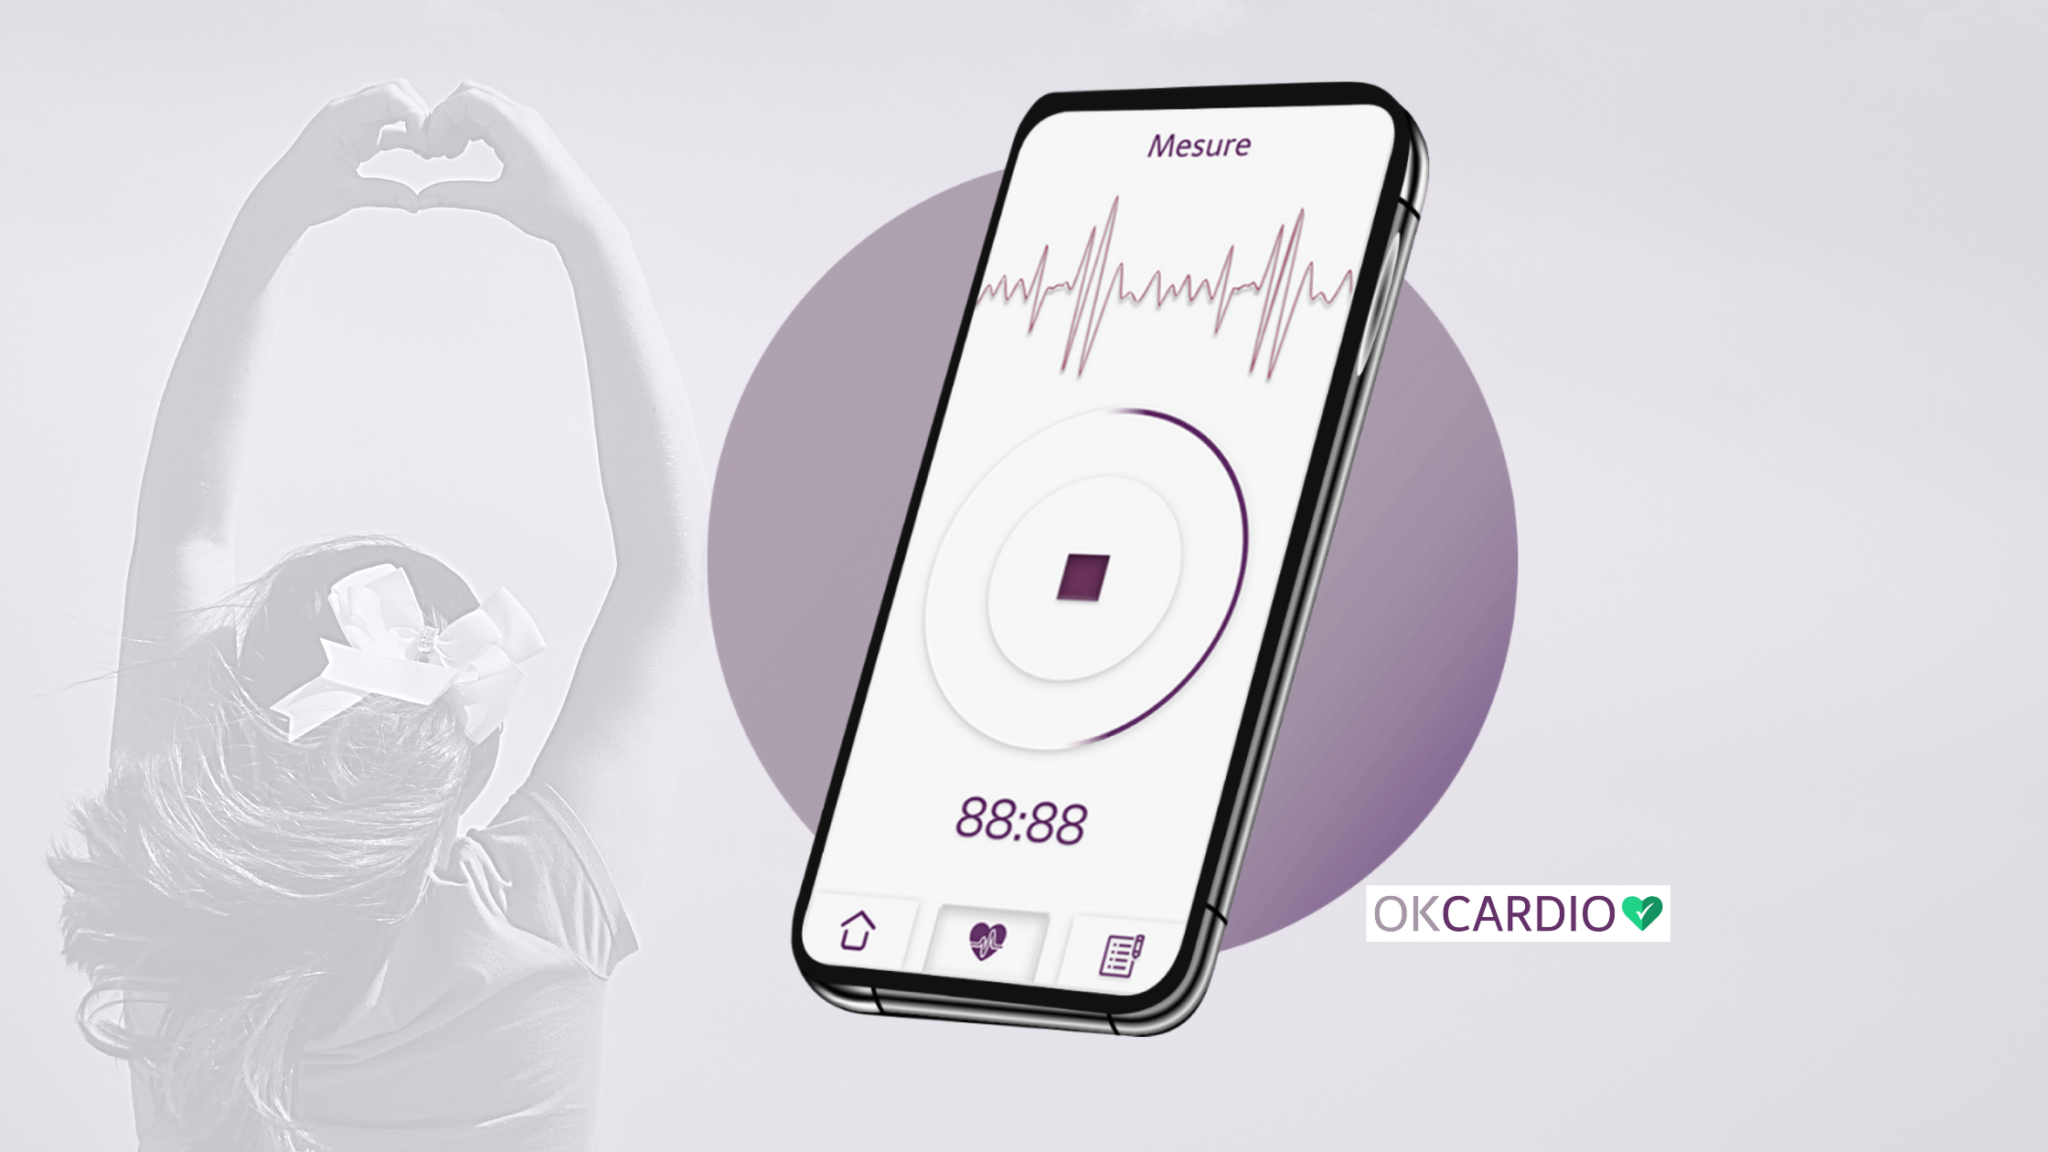 Pryv HeartKinetics Home Cardiac Monitoring